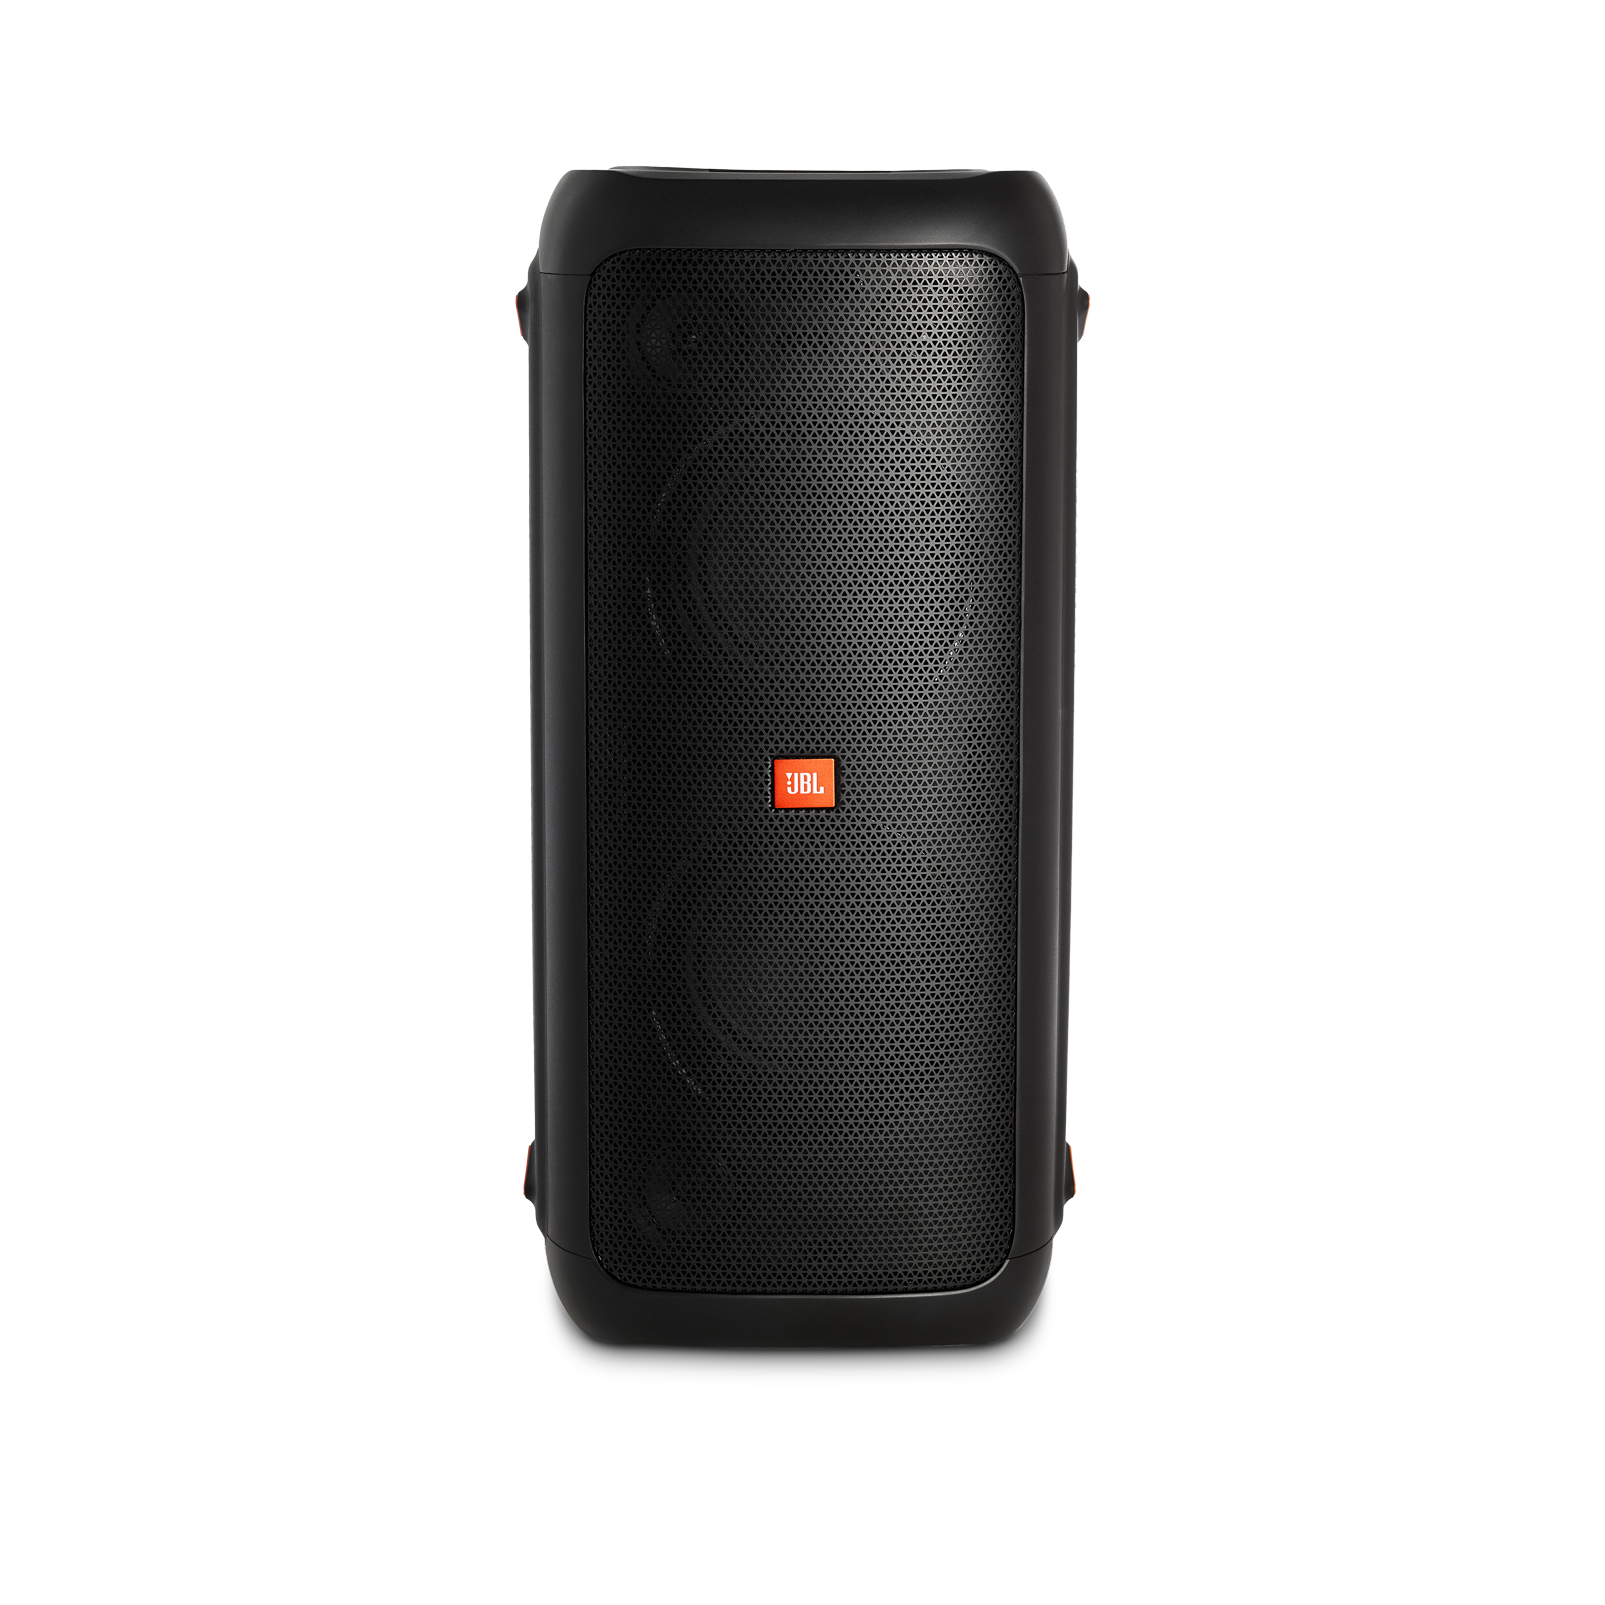 JBL PartyBox 200 - Black - Portable Bluetooth party speaker with light effects - Front